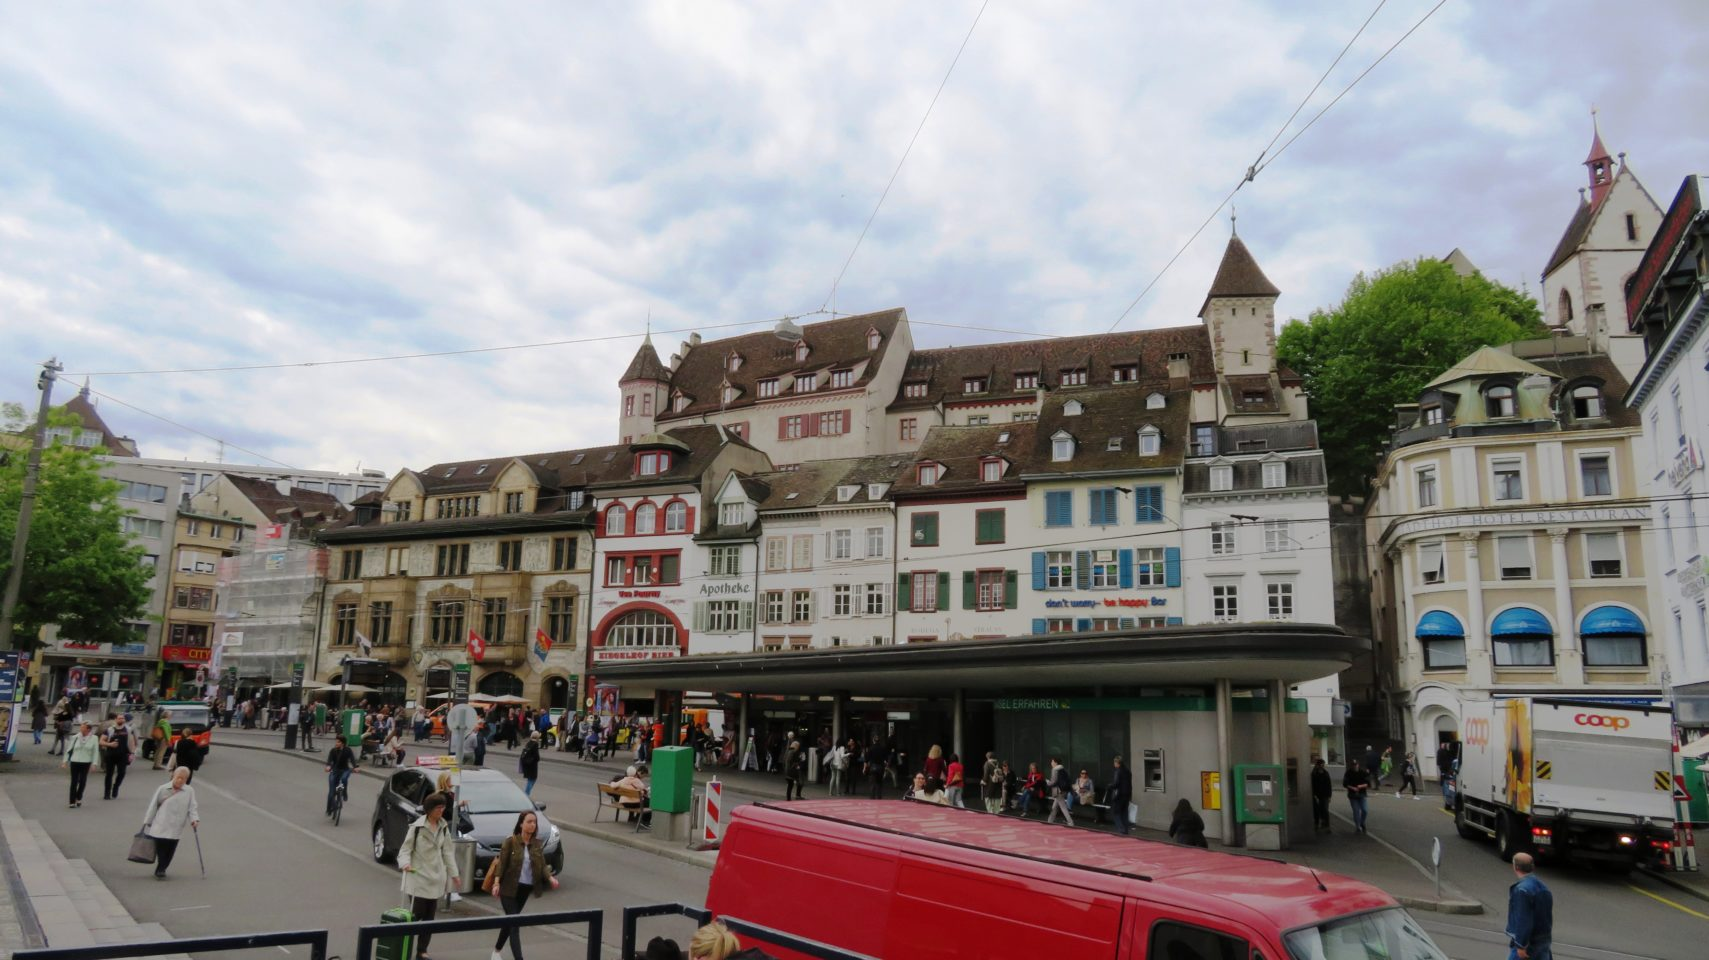 Busy historic BarfusserPlatz in <em><strong>Basel</strong></em>, Switzerland